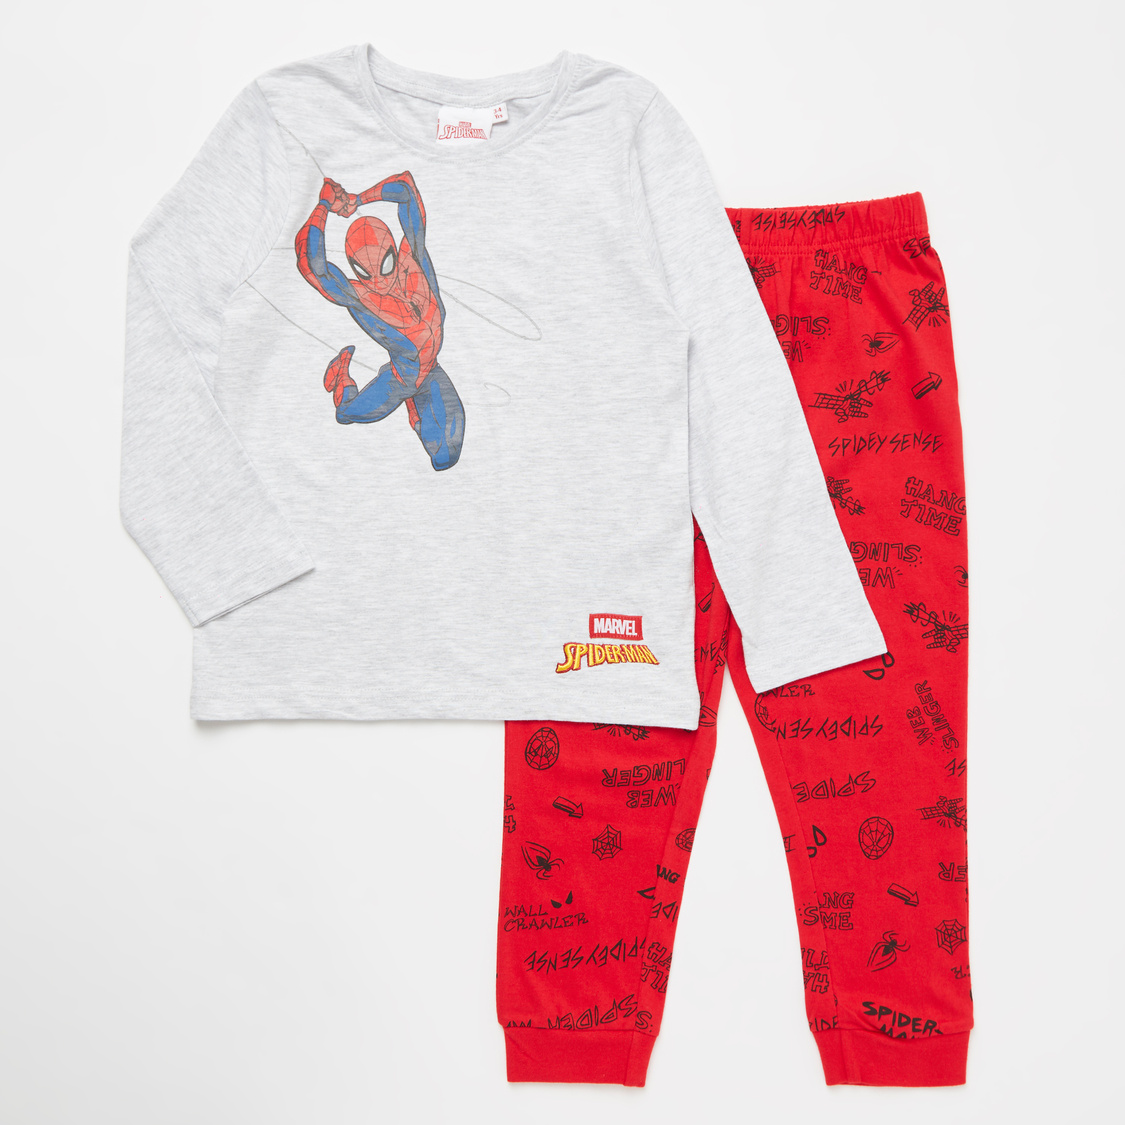 Spider-Man Print Round Neck T-shirt and Pyjama Set